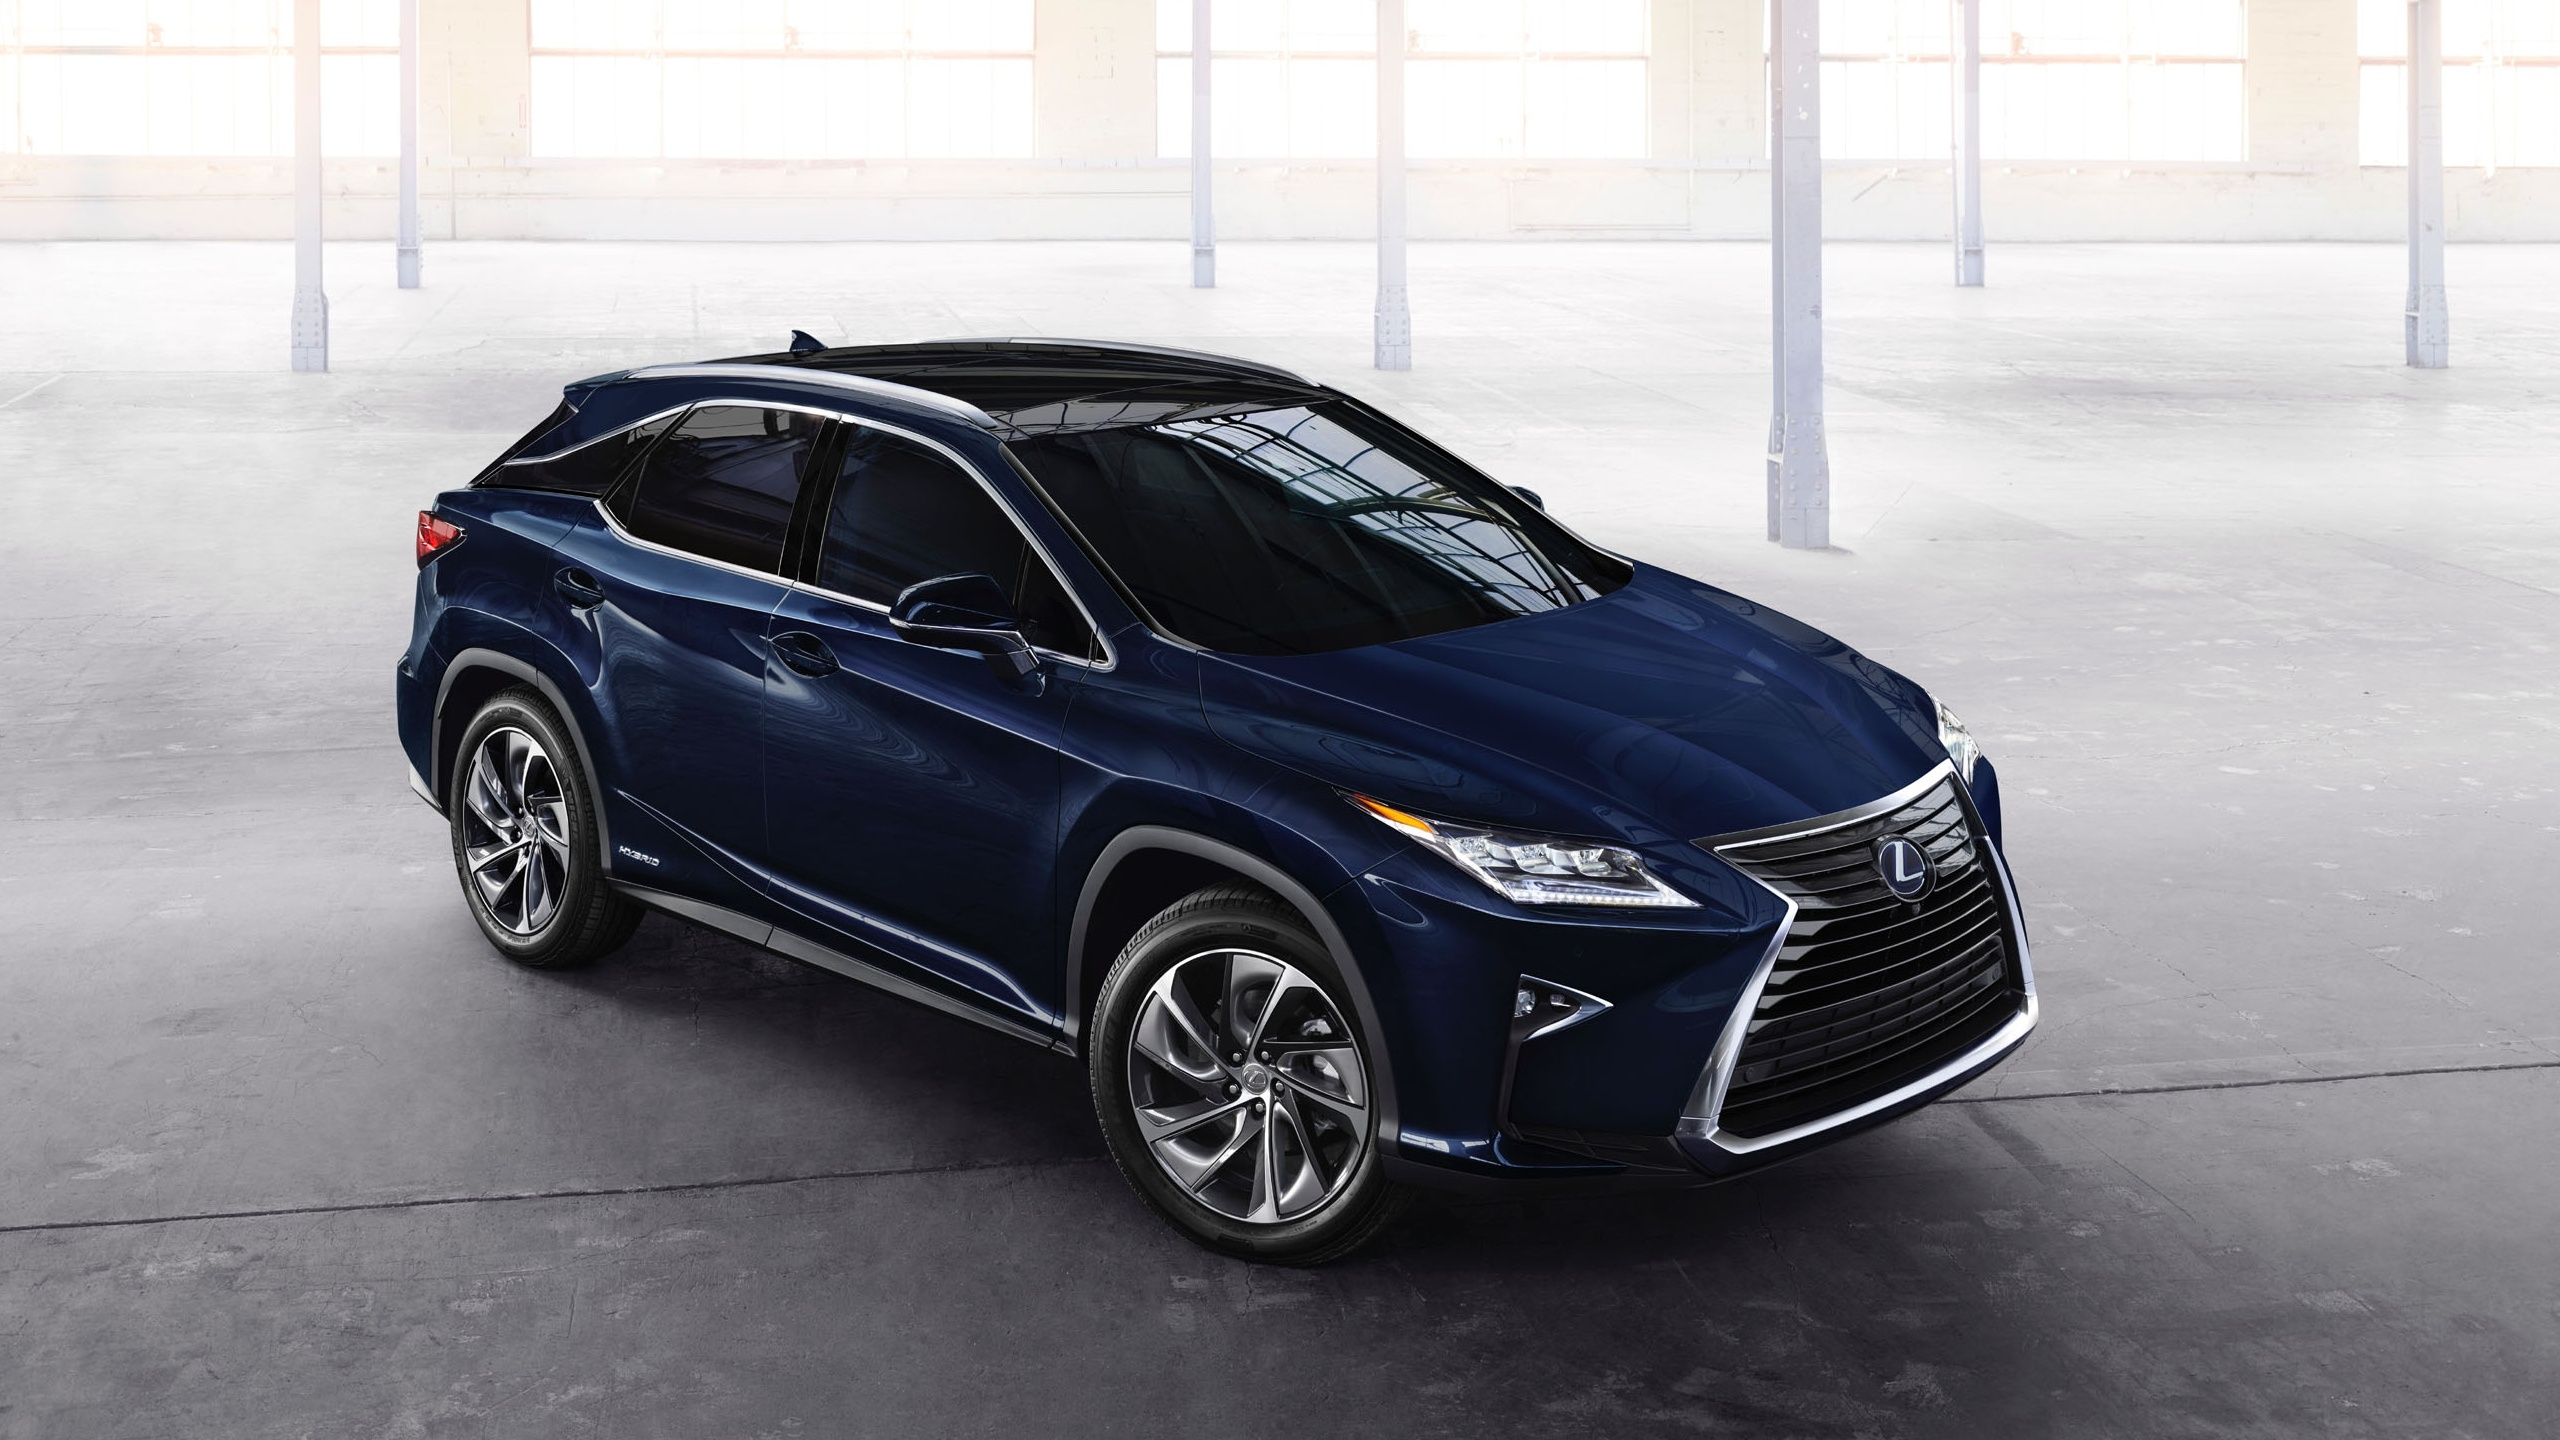 Lexus RX 450h 2015 2560 x 1440 Download Close 2560x1440